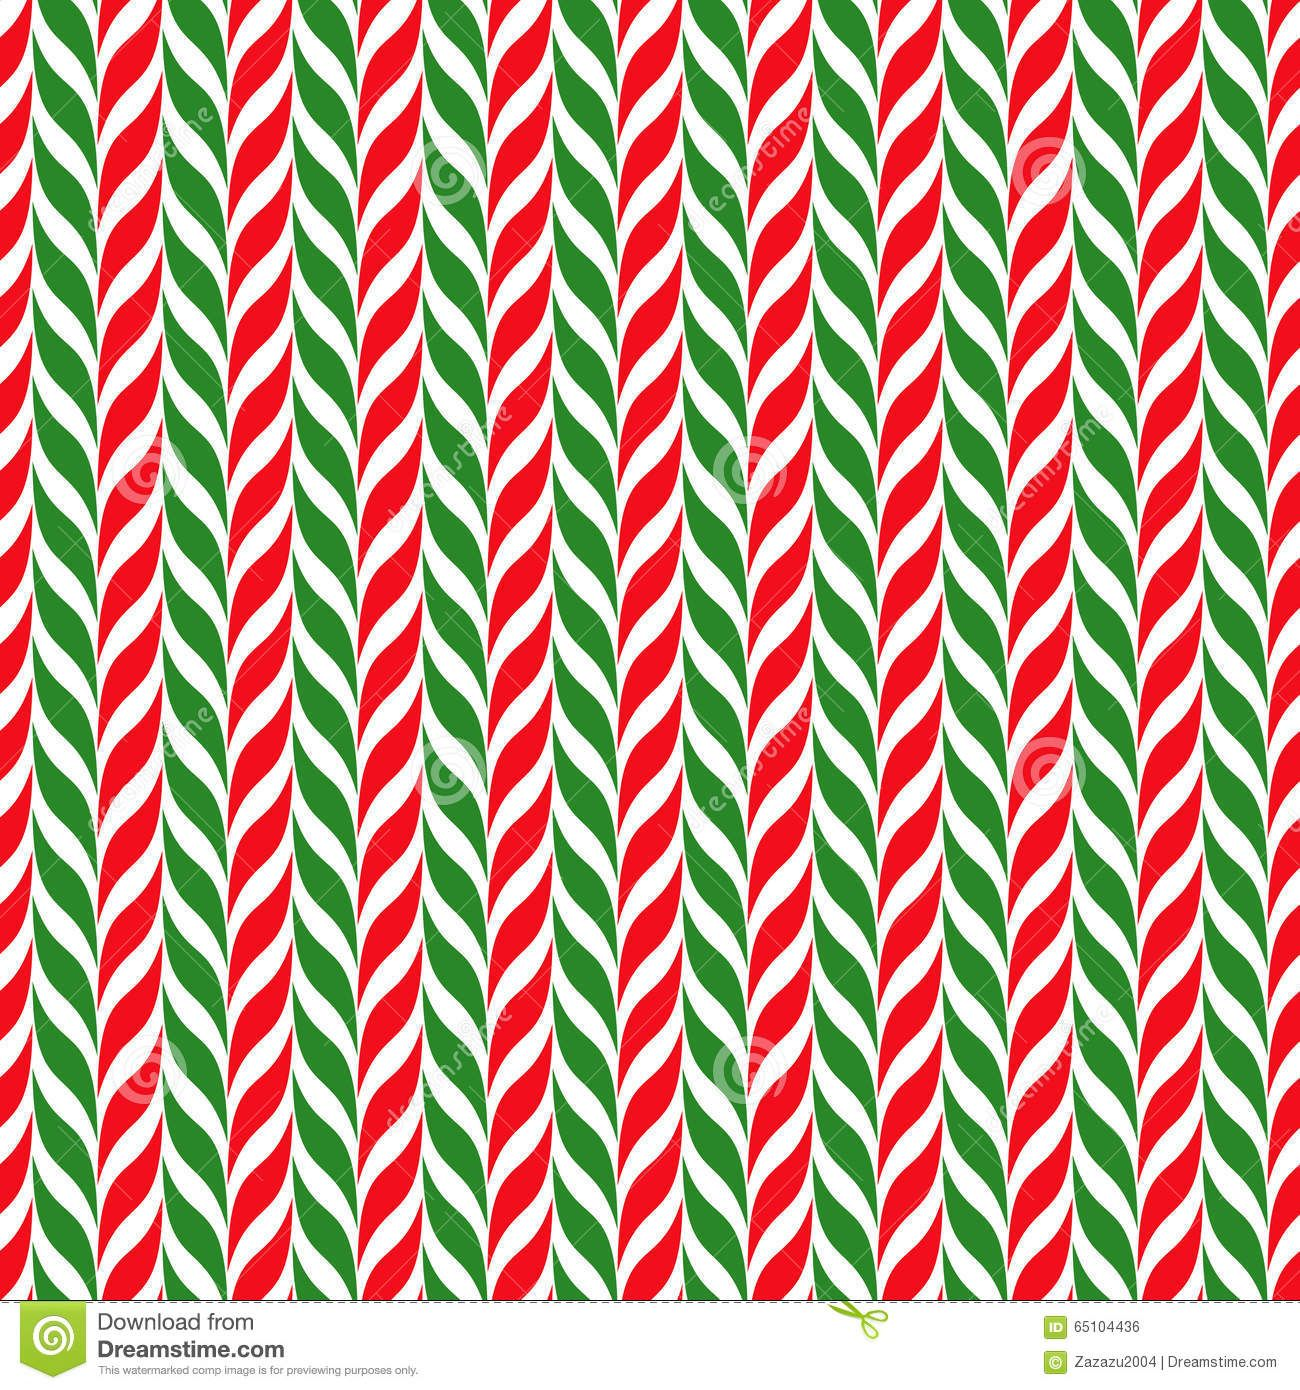 Candy canes vector background. Seamless xmas pattern with